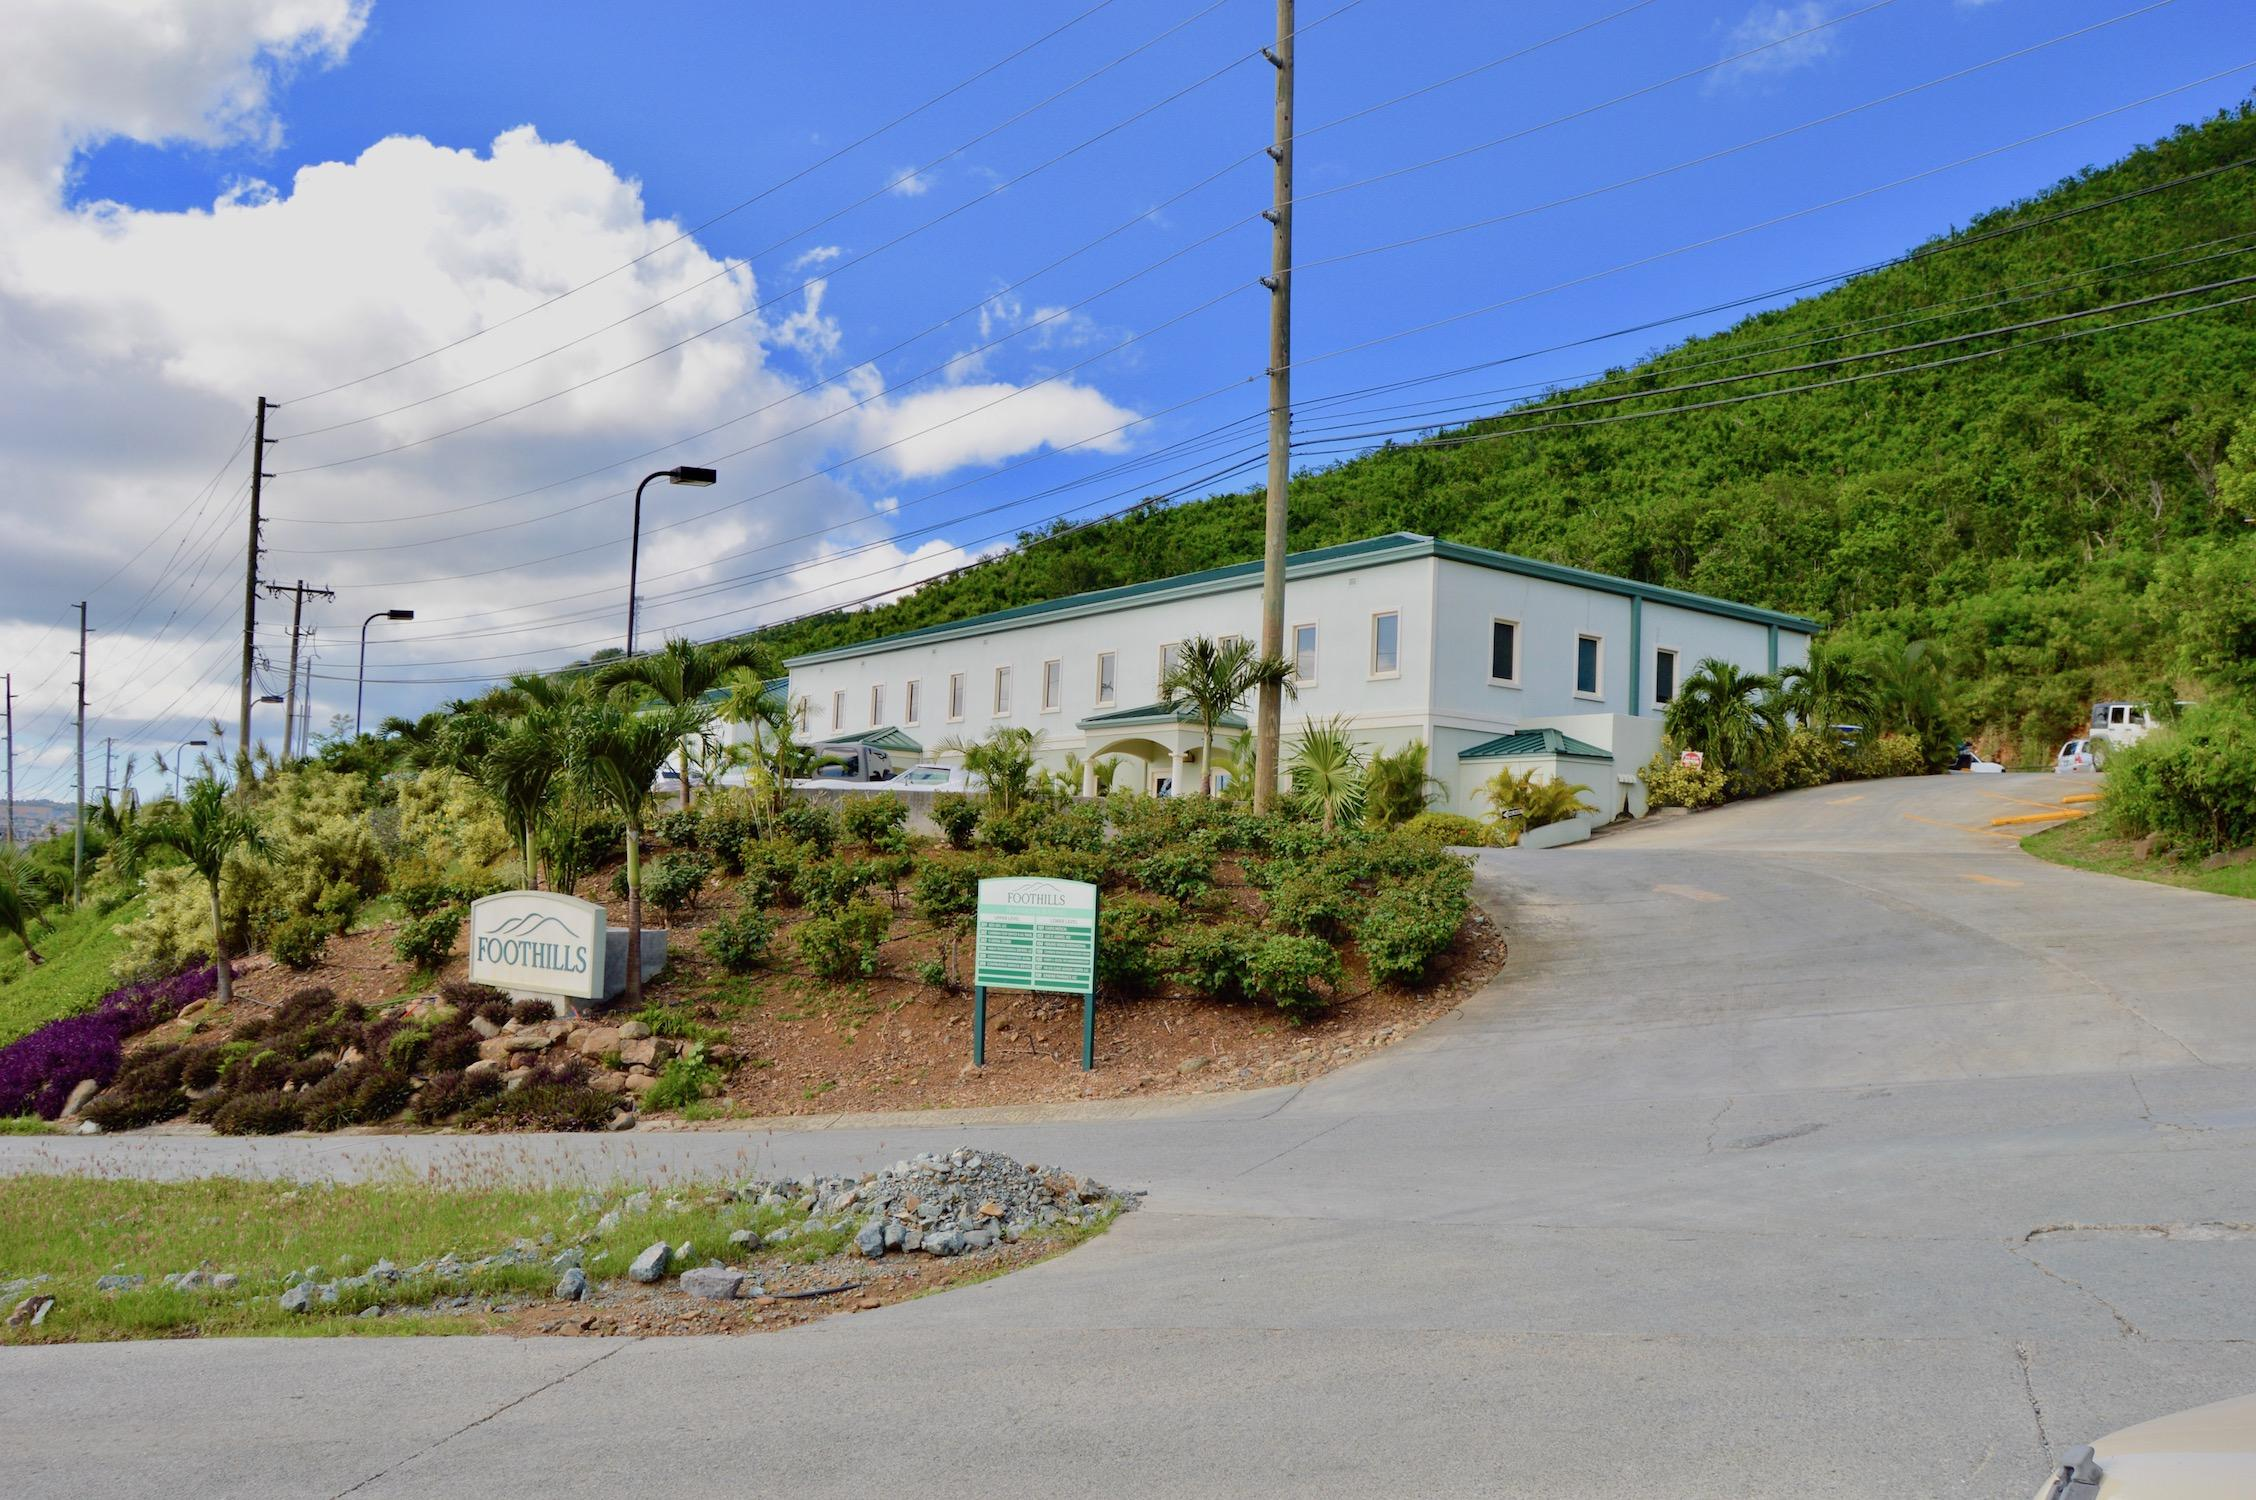 Commercial for Sale at 101/102 Thomas NEW 101/102 Thomas NEW St Thomas, Virgin Islands 00802 United States Virgin Islands